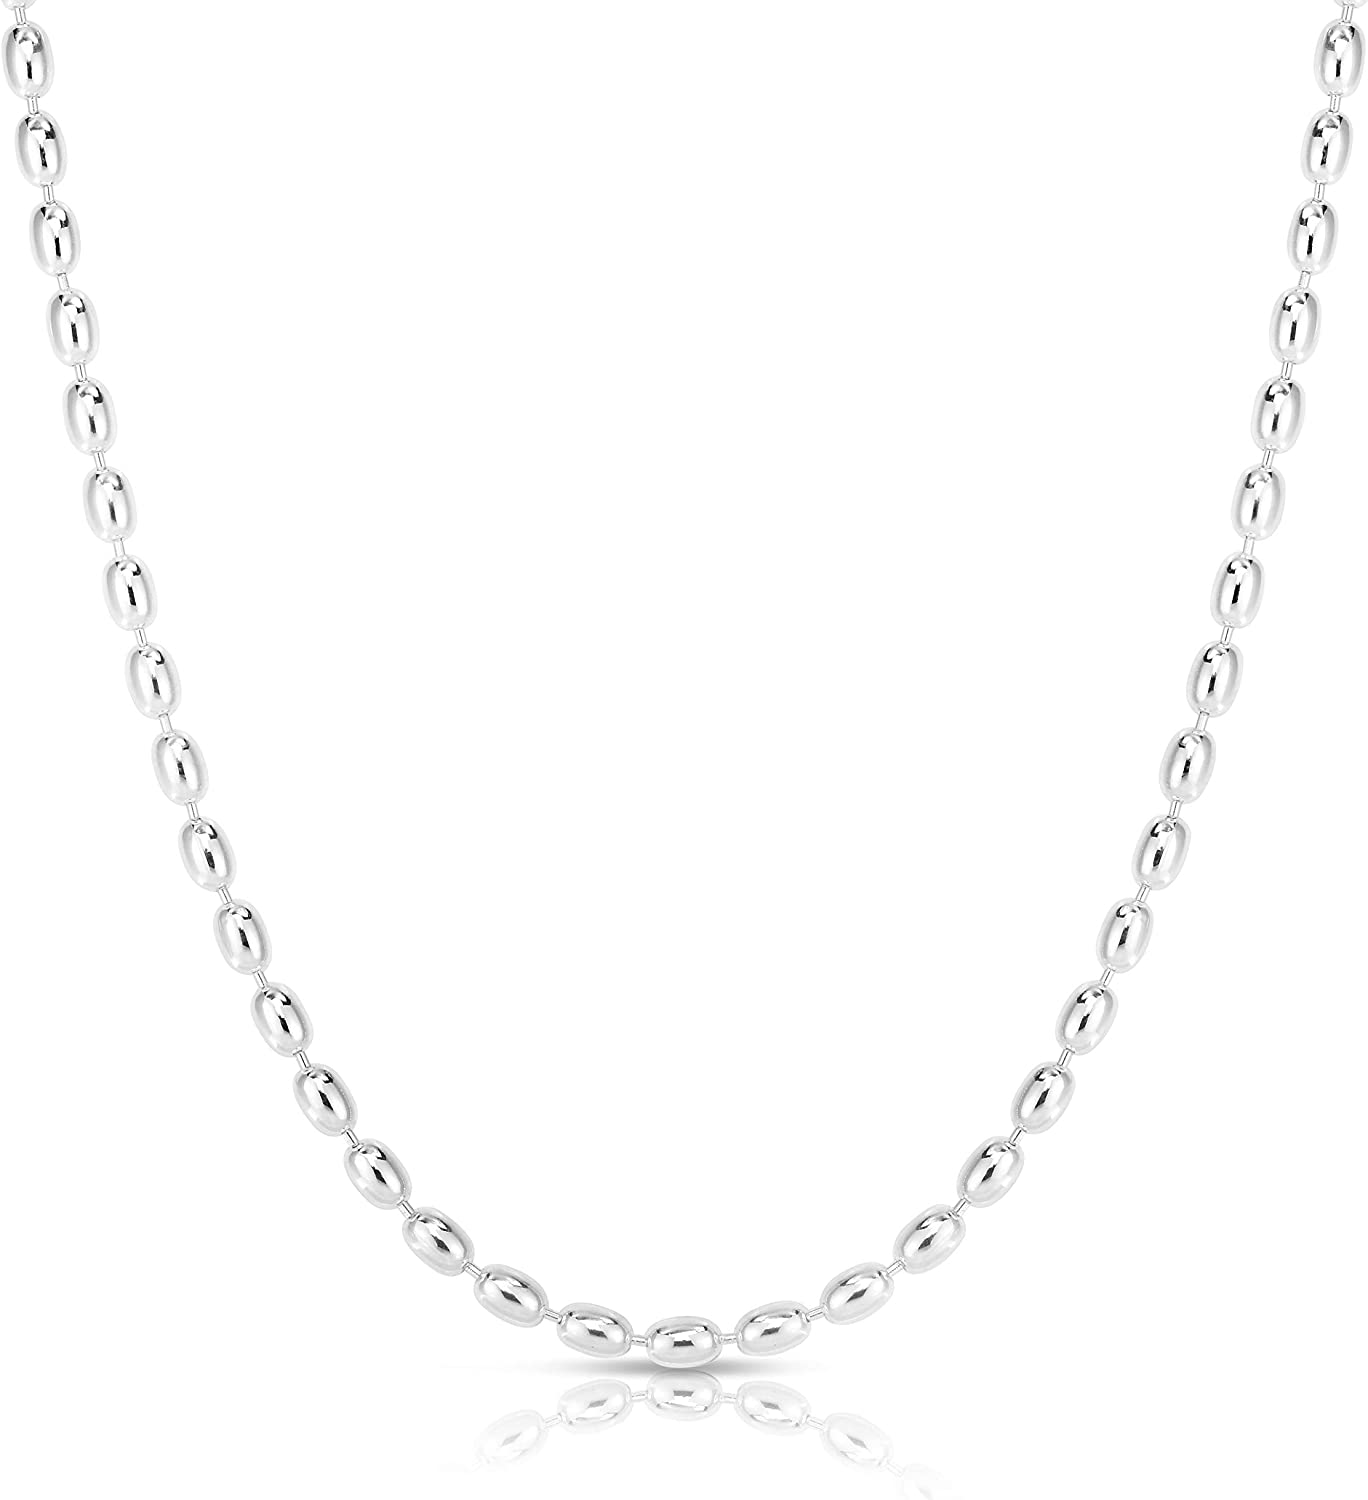 925 Oval Bead Chain Necklace made in Italy Sterling Silver 2.3 mm Rice Bead Chain